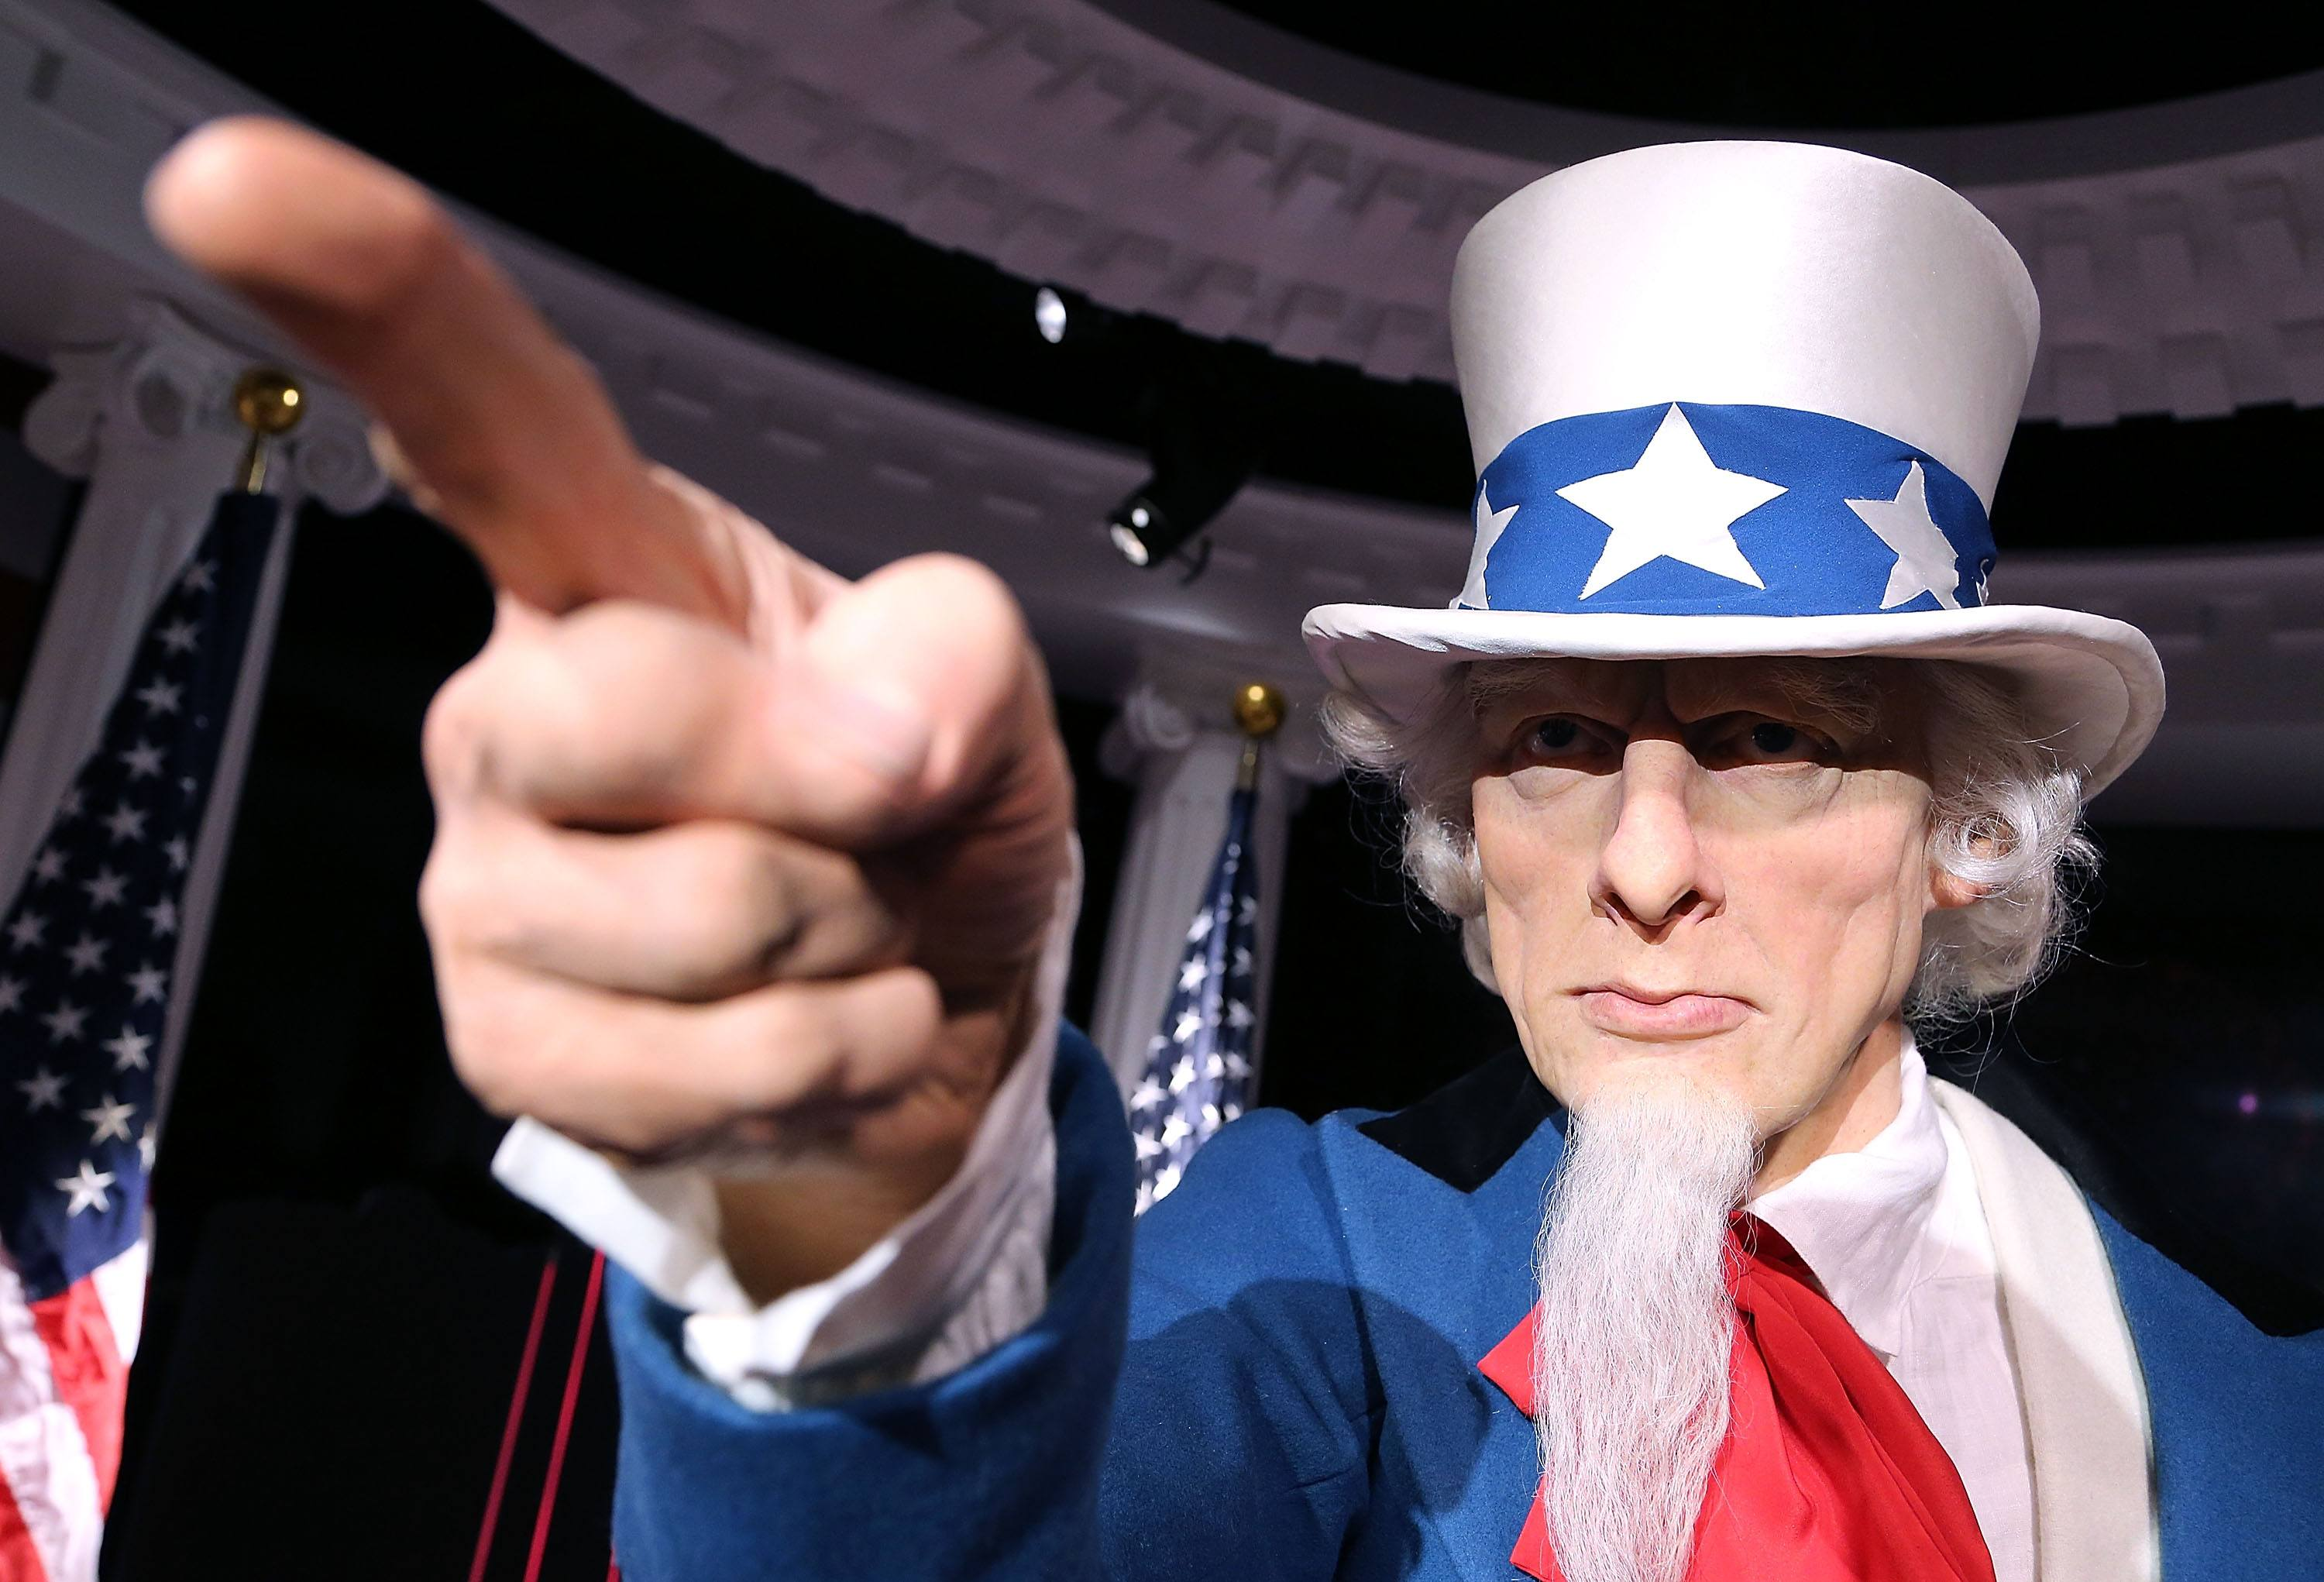 A wax replica of Uncle Sam